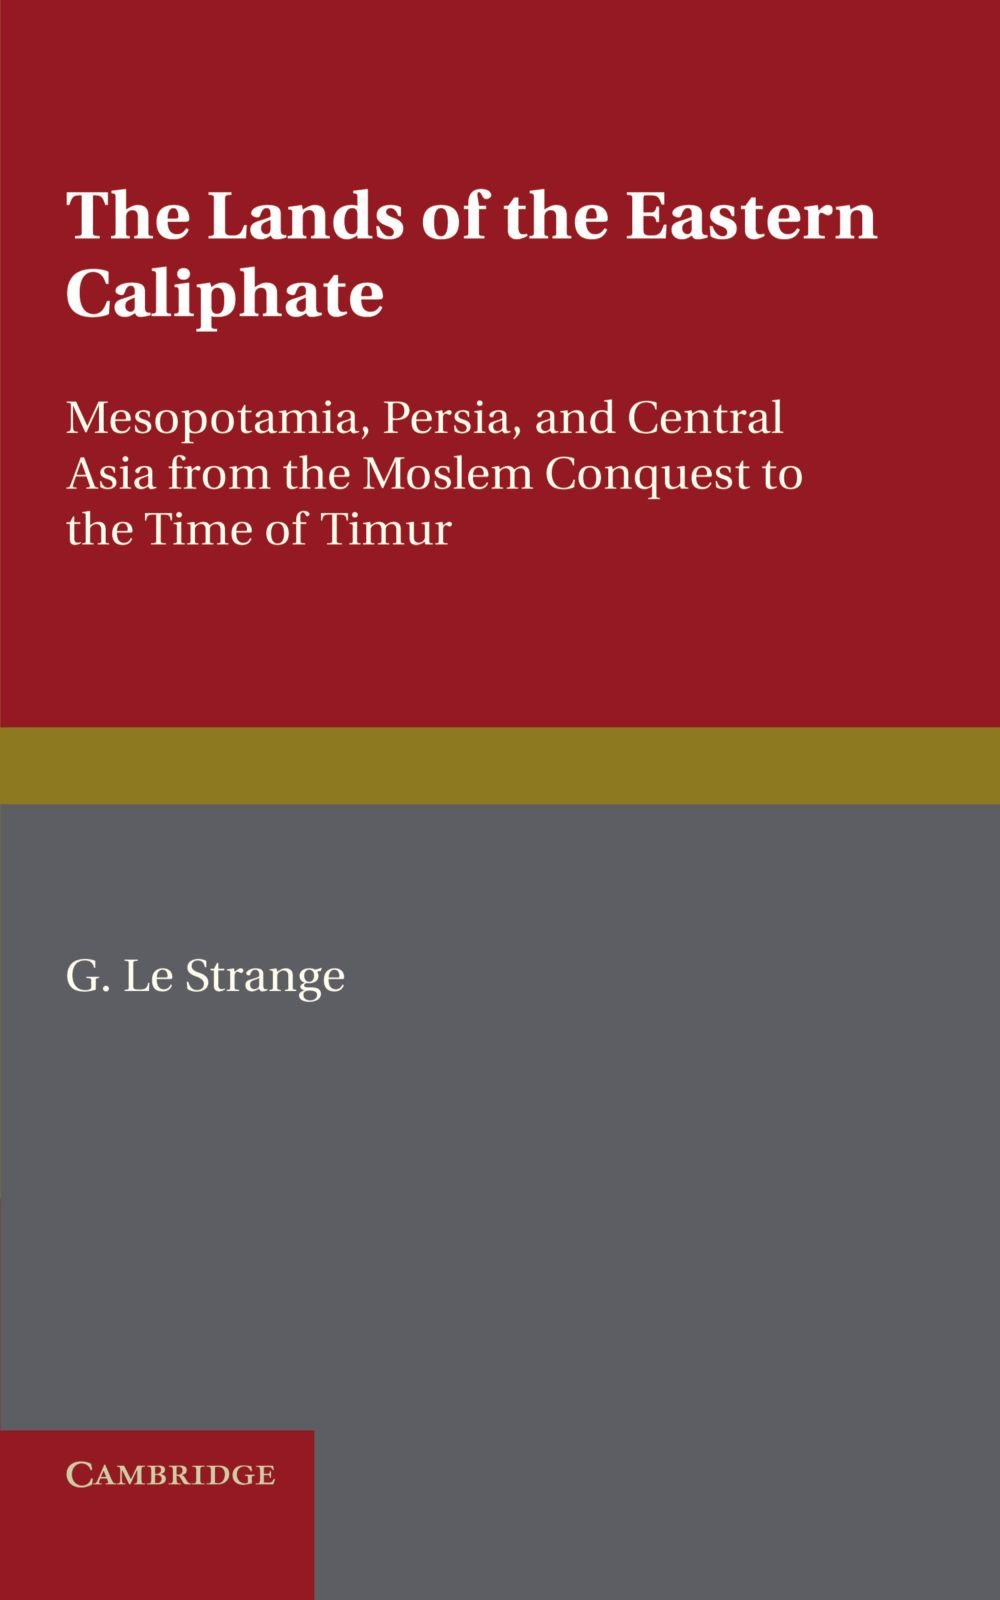 Download The Lands of the Eastern Caliphate PDF